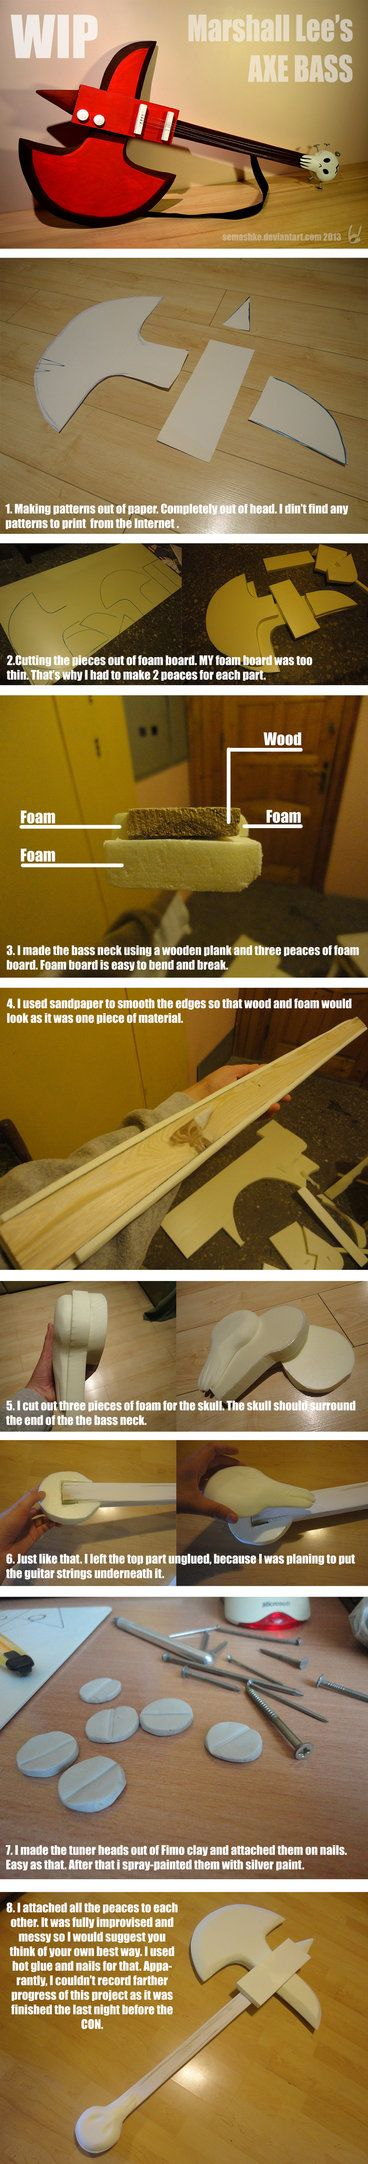 Marshall Lee's axe bass - WIP and HOW TO by Semashke